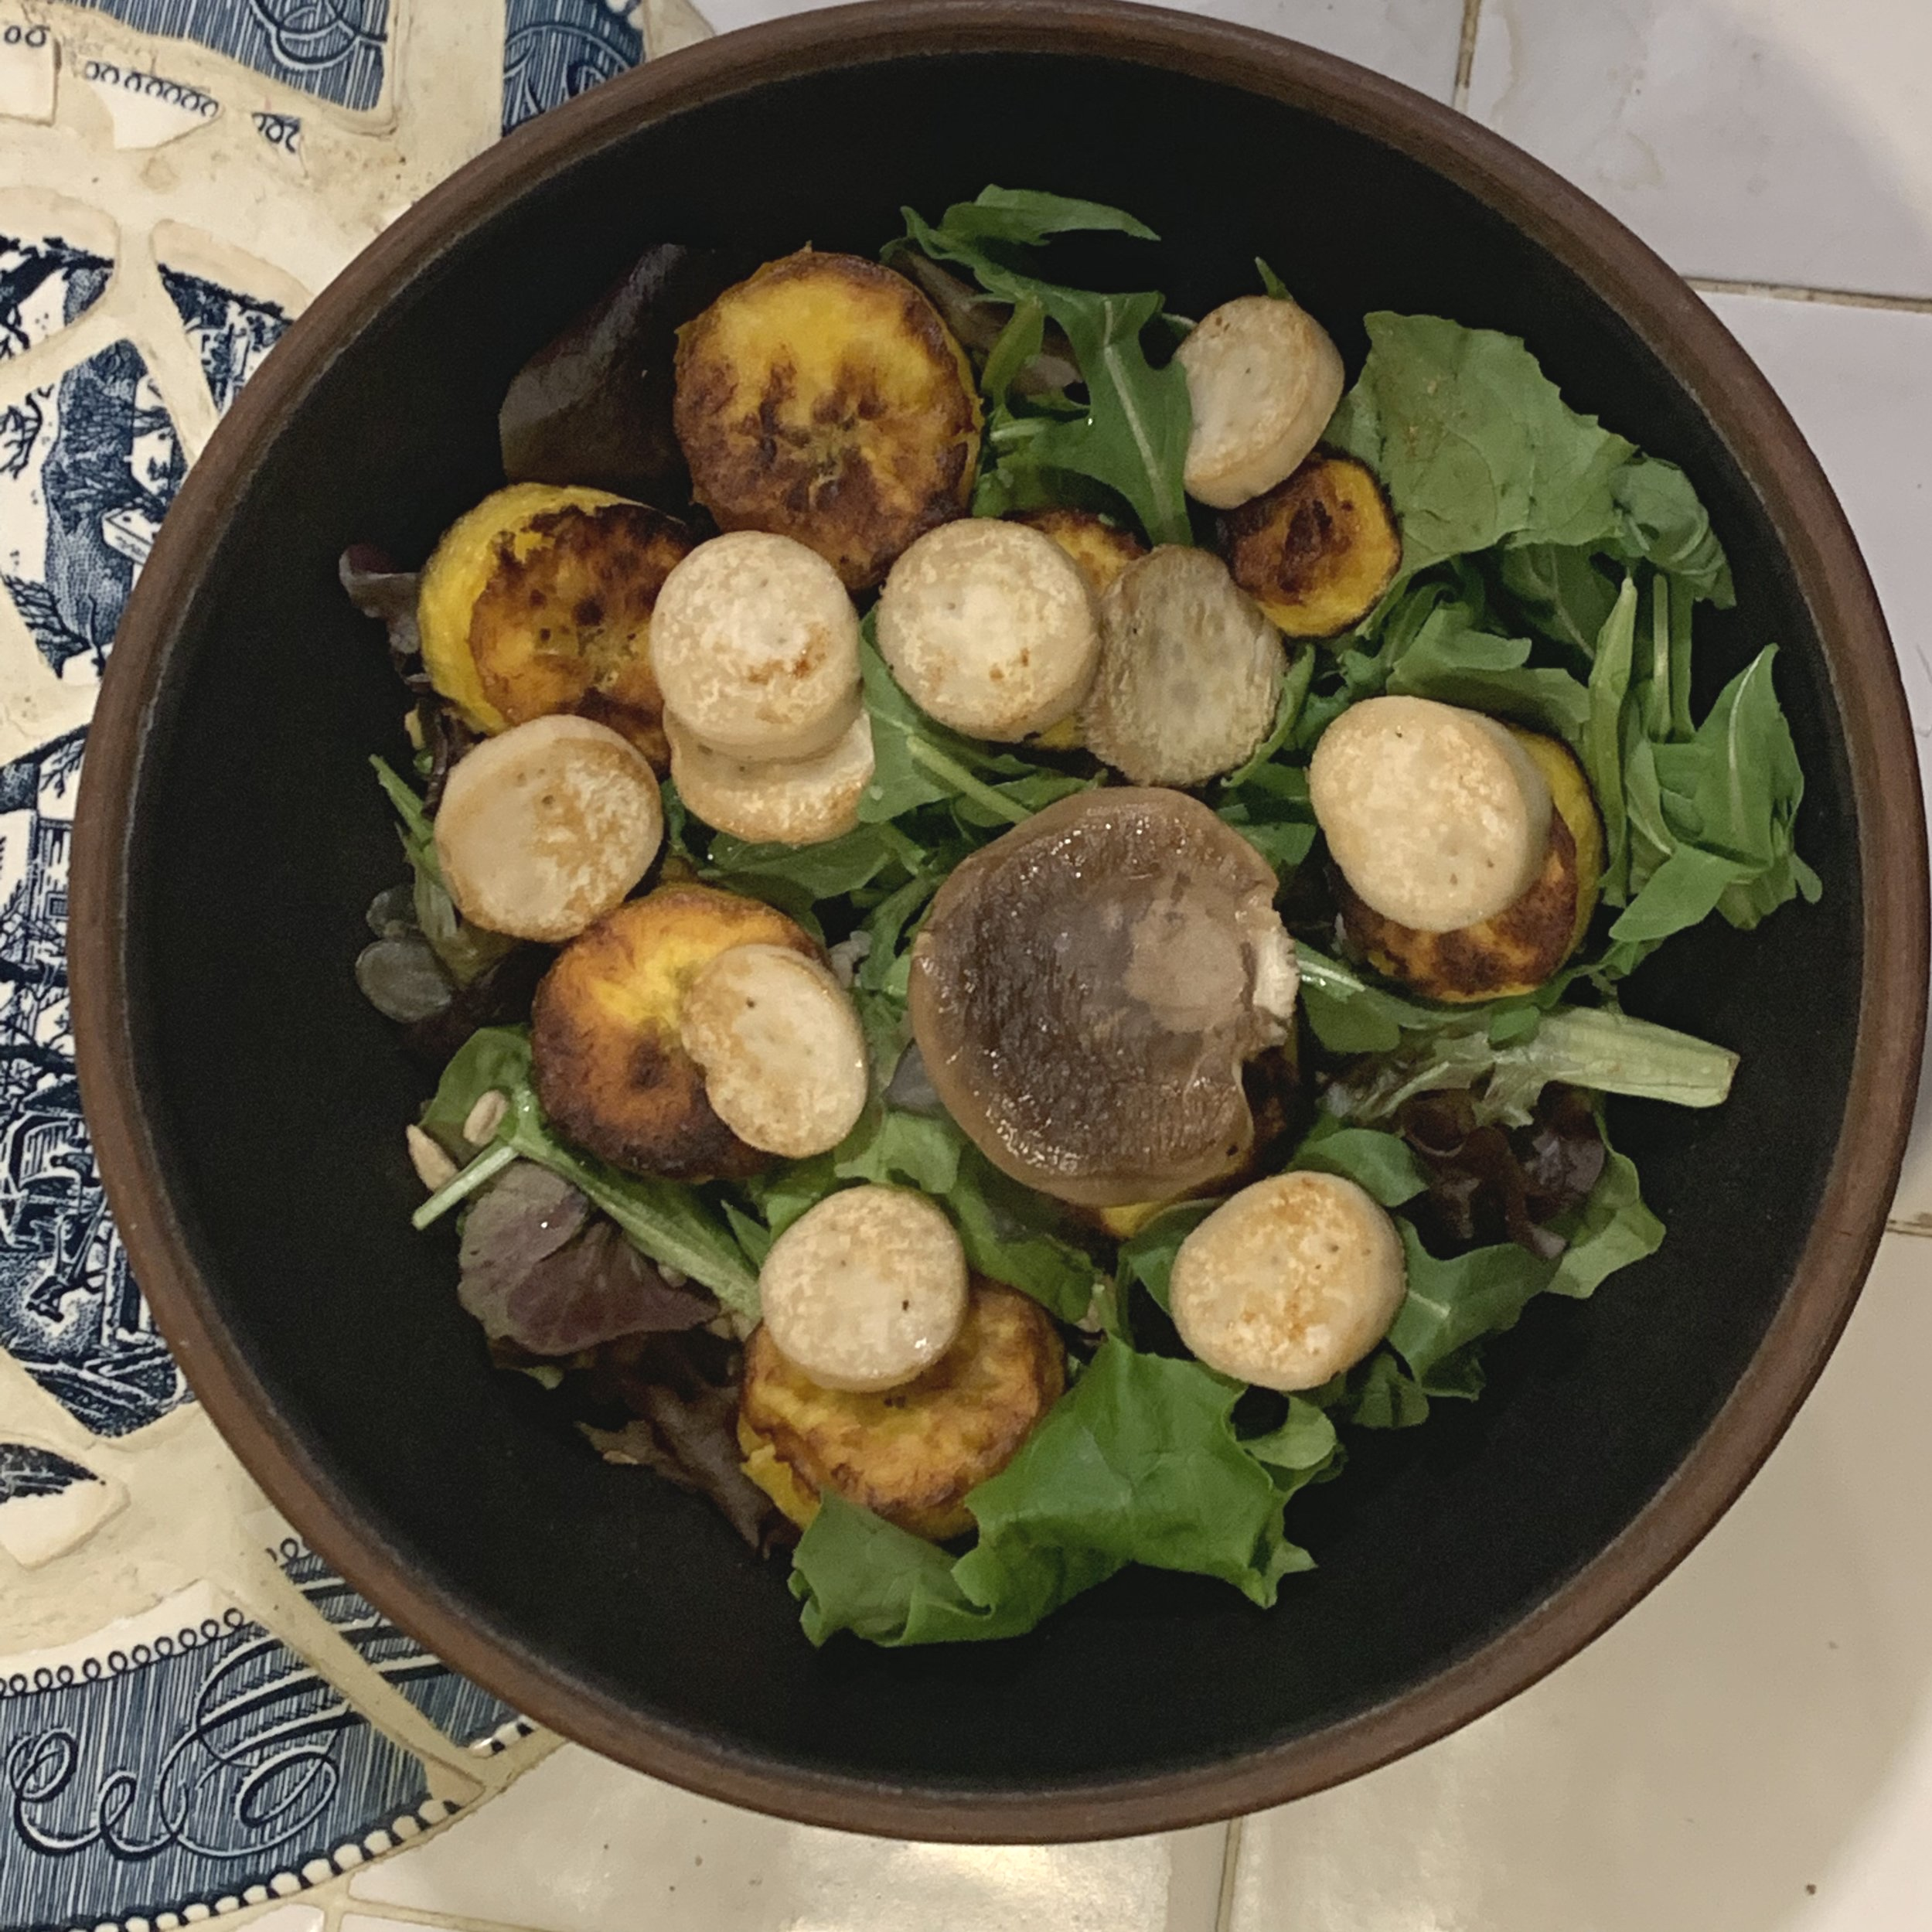 dry roasted trumped mushroom and plantain added to a spring mix salad